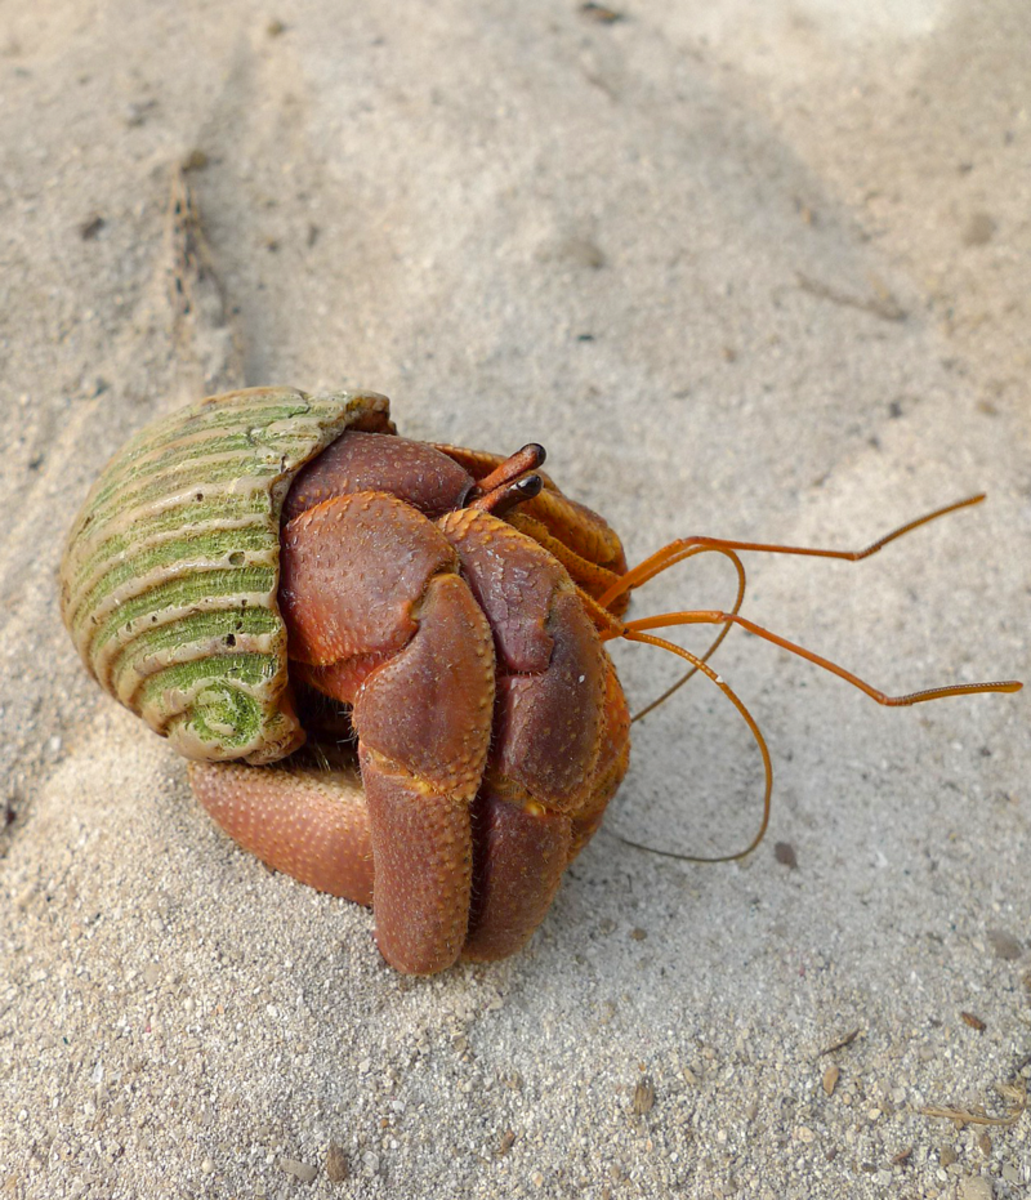 This hermit crab looks like it needs to find a new shell.